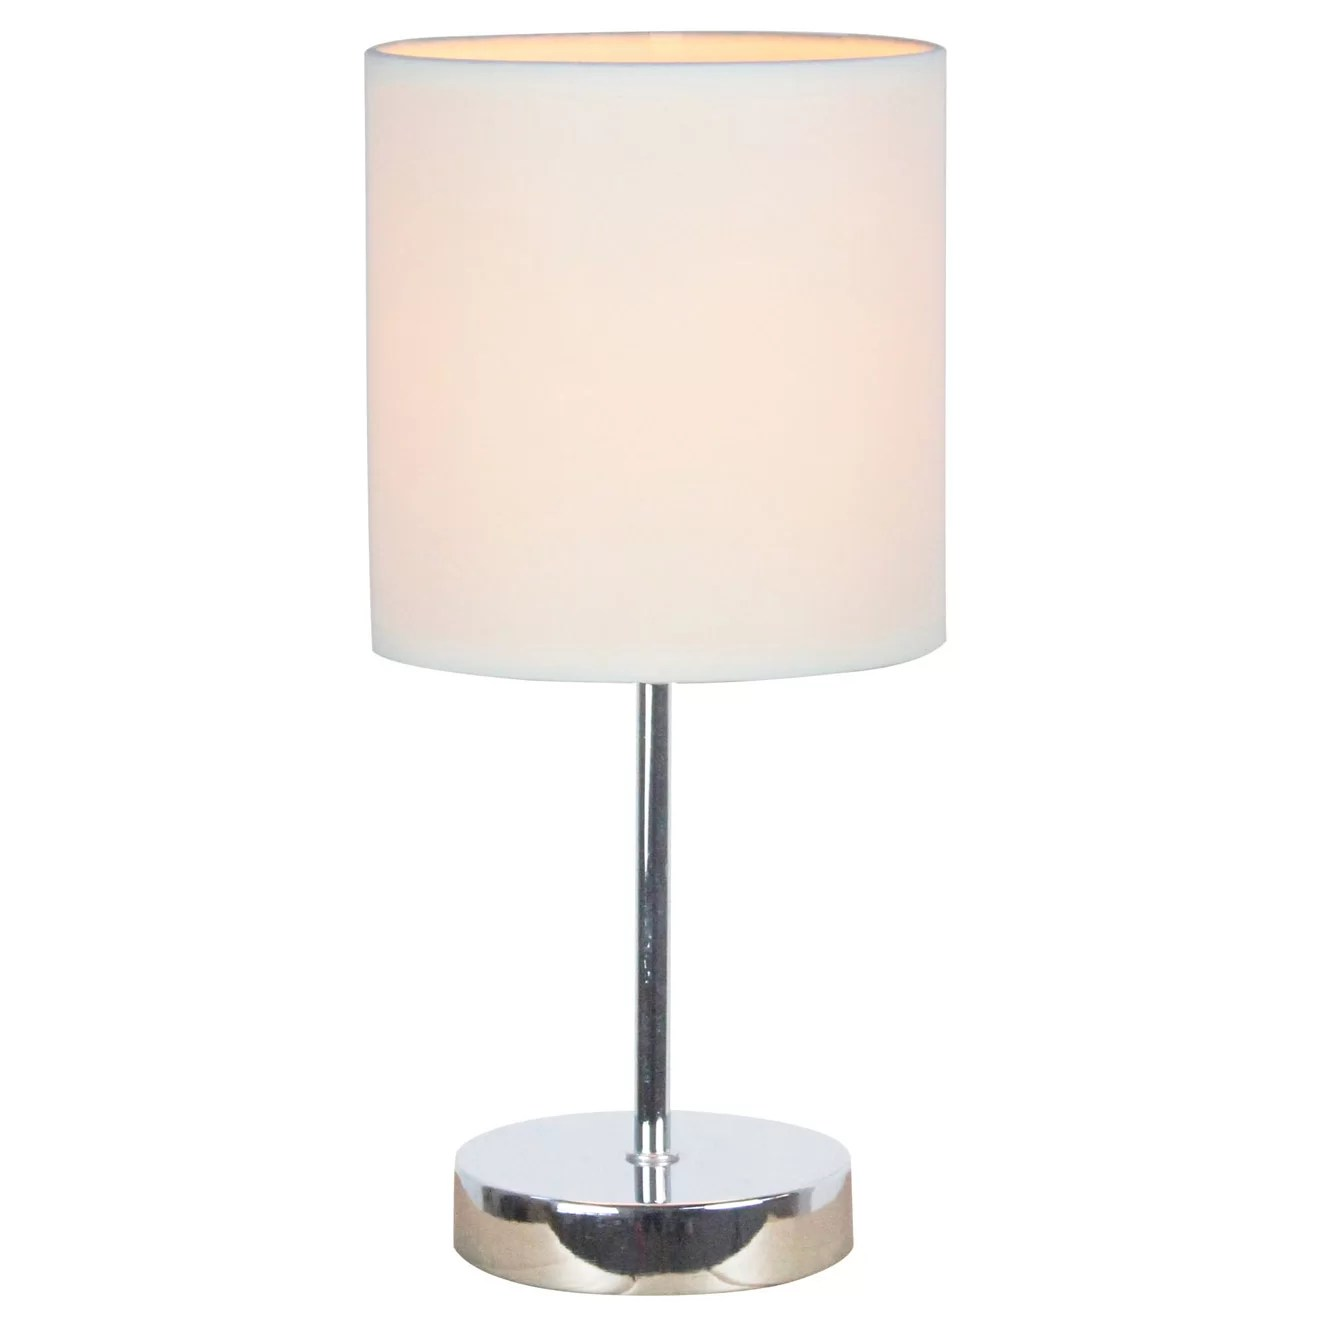 Simple Table Lamp All The Rages Simple Designs Mini Basic 11 81 Quot H Table